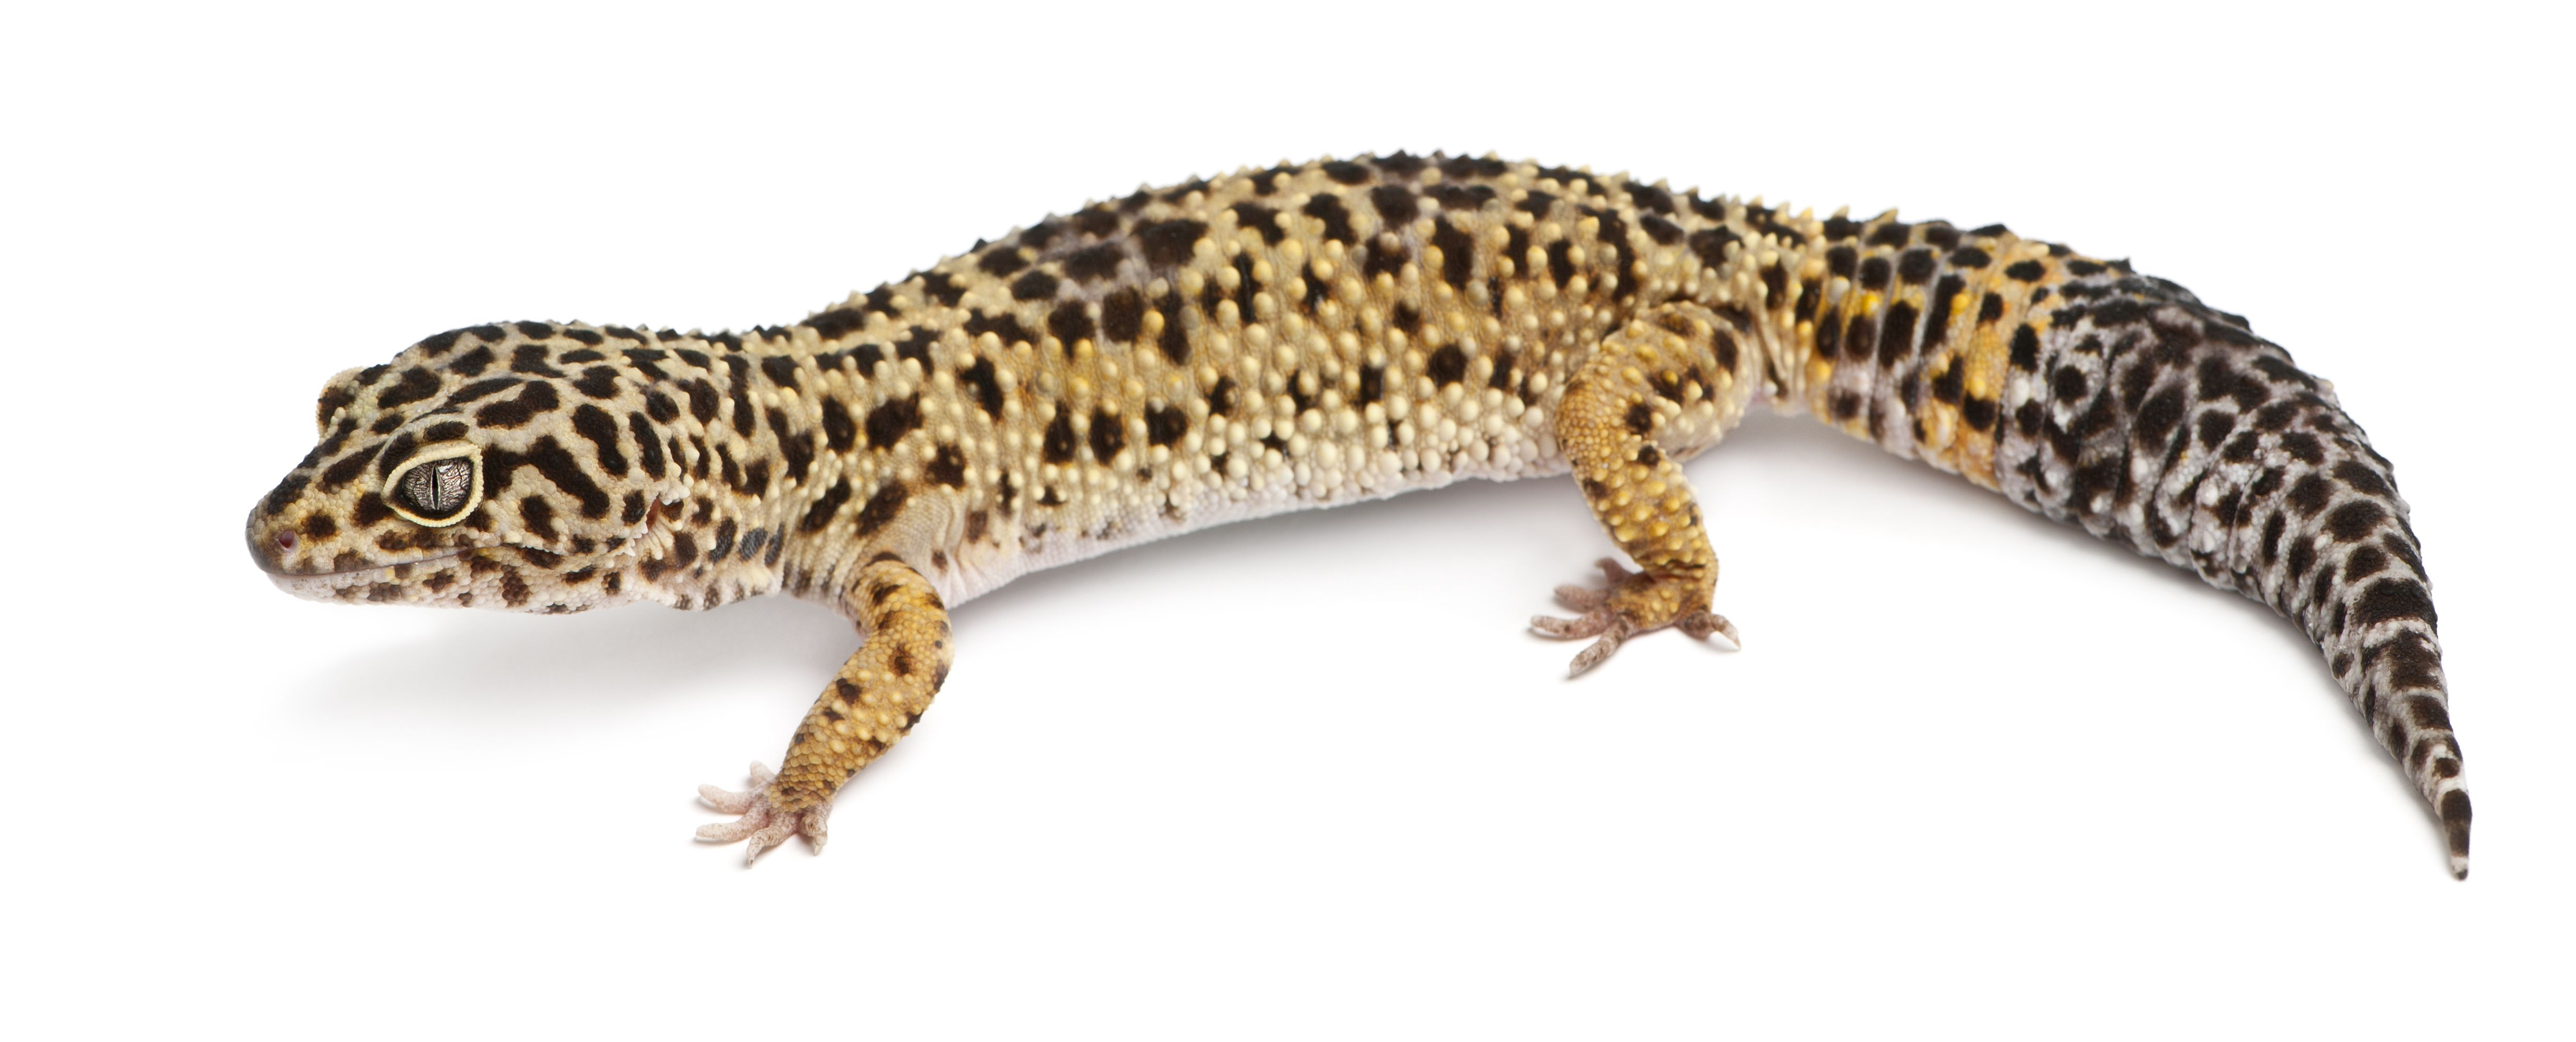 How To Tell If Your Leopard Gecko Is Fat